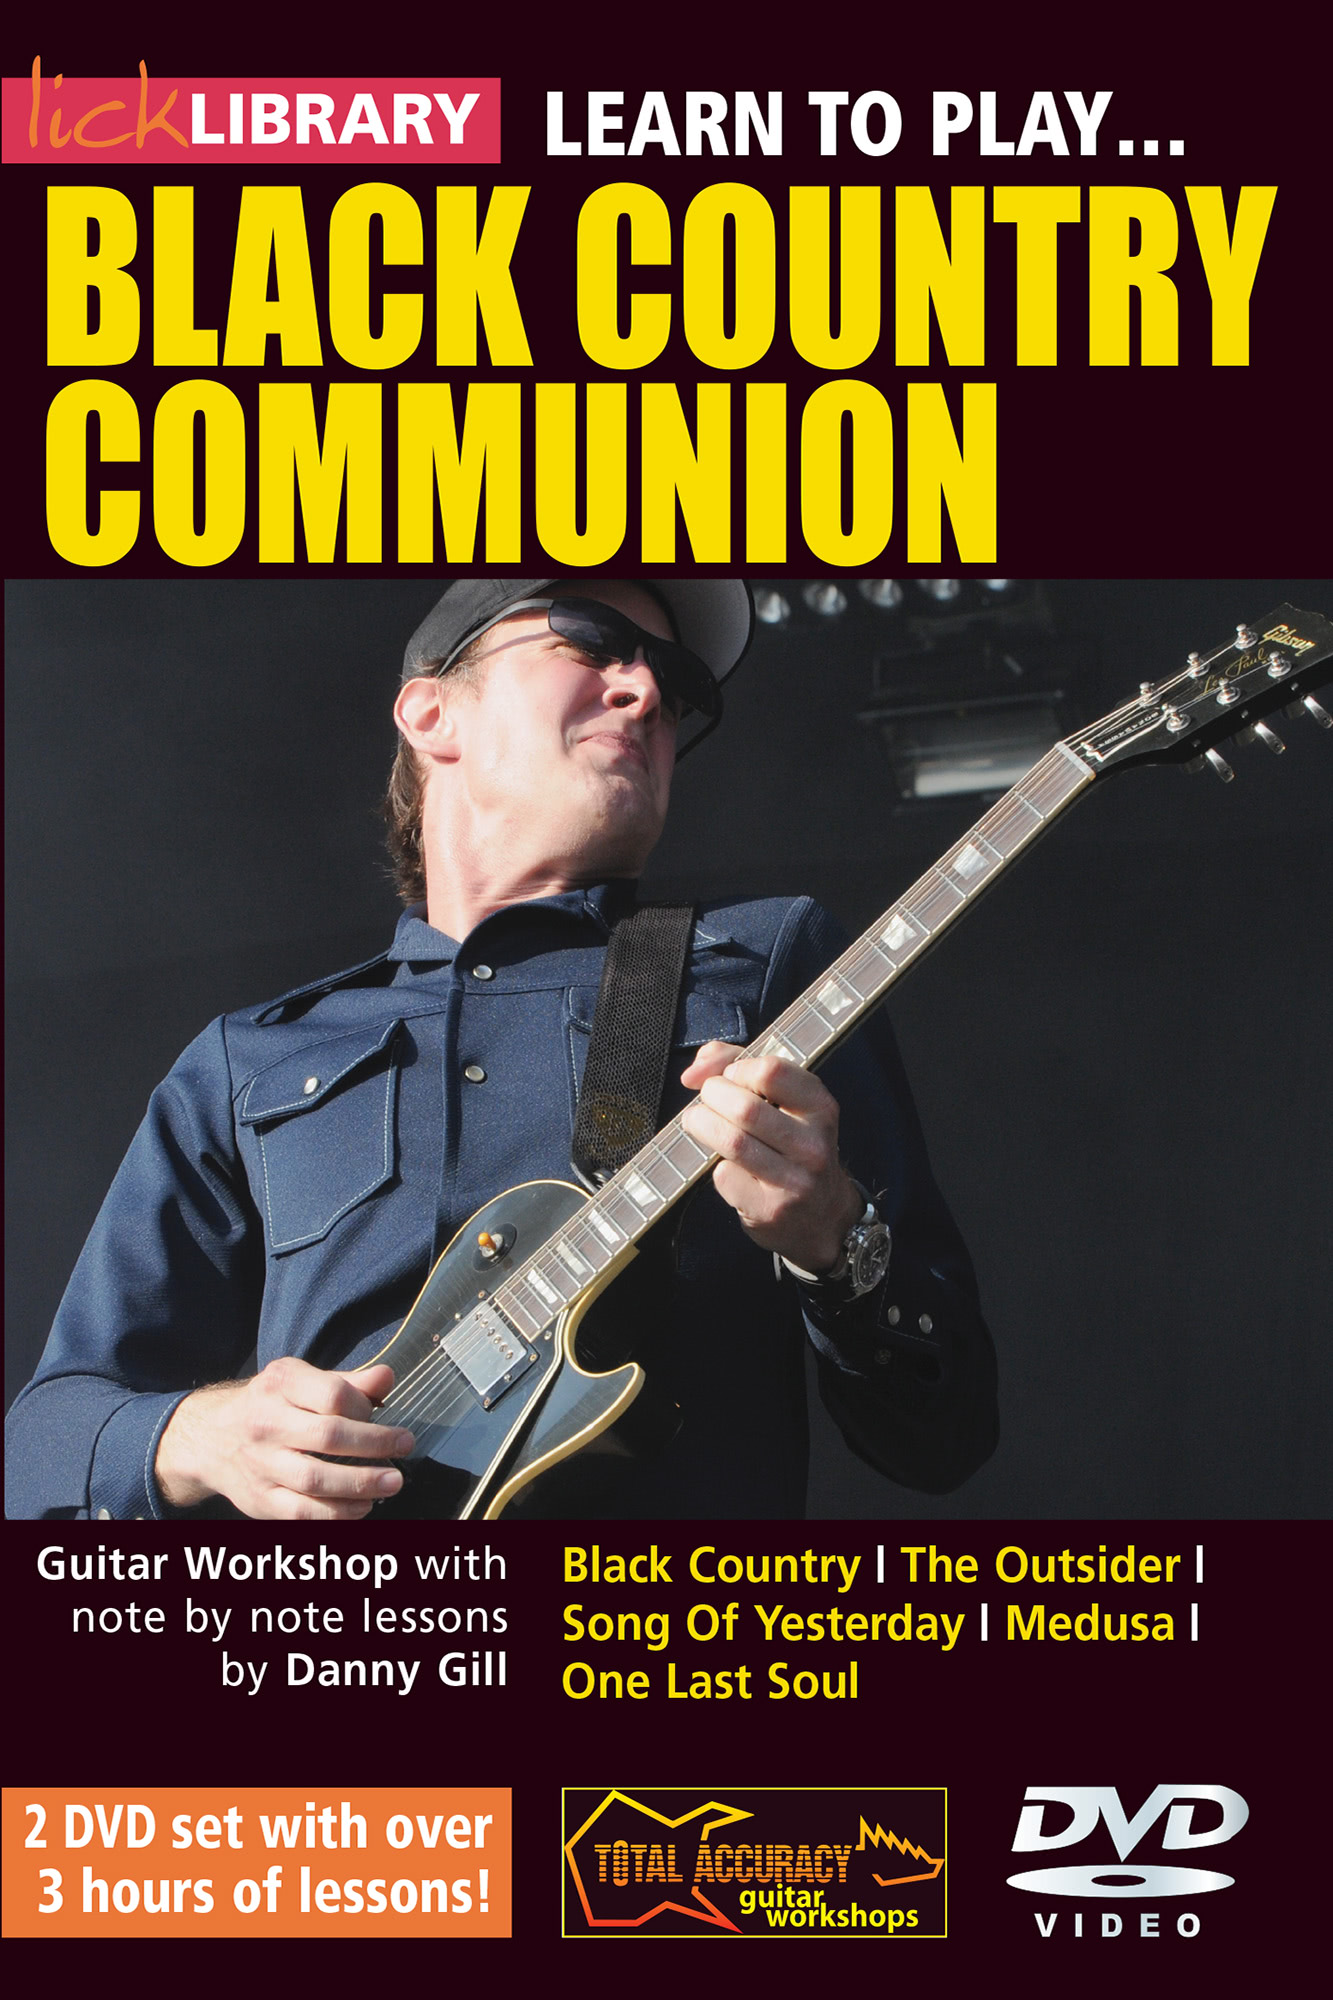 Learn To Play Black Country Communion